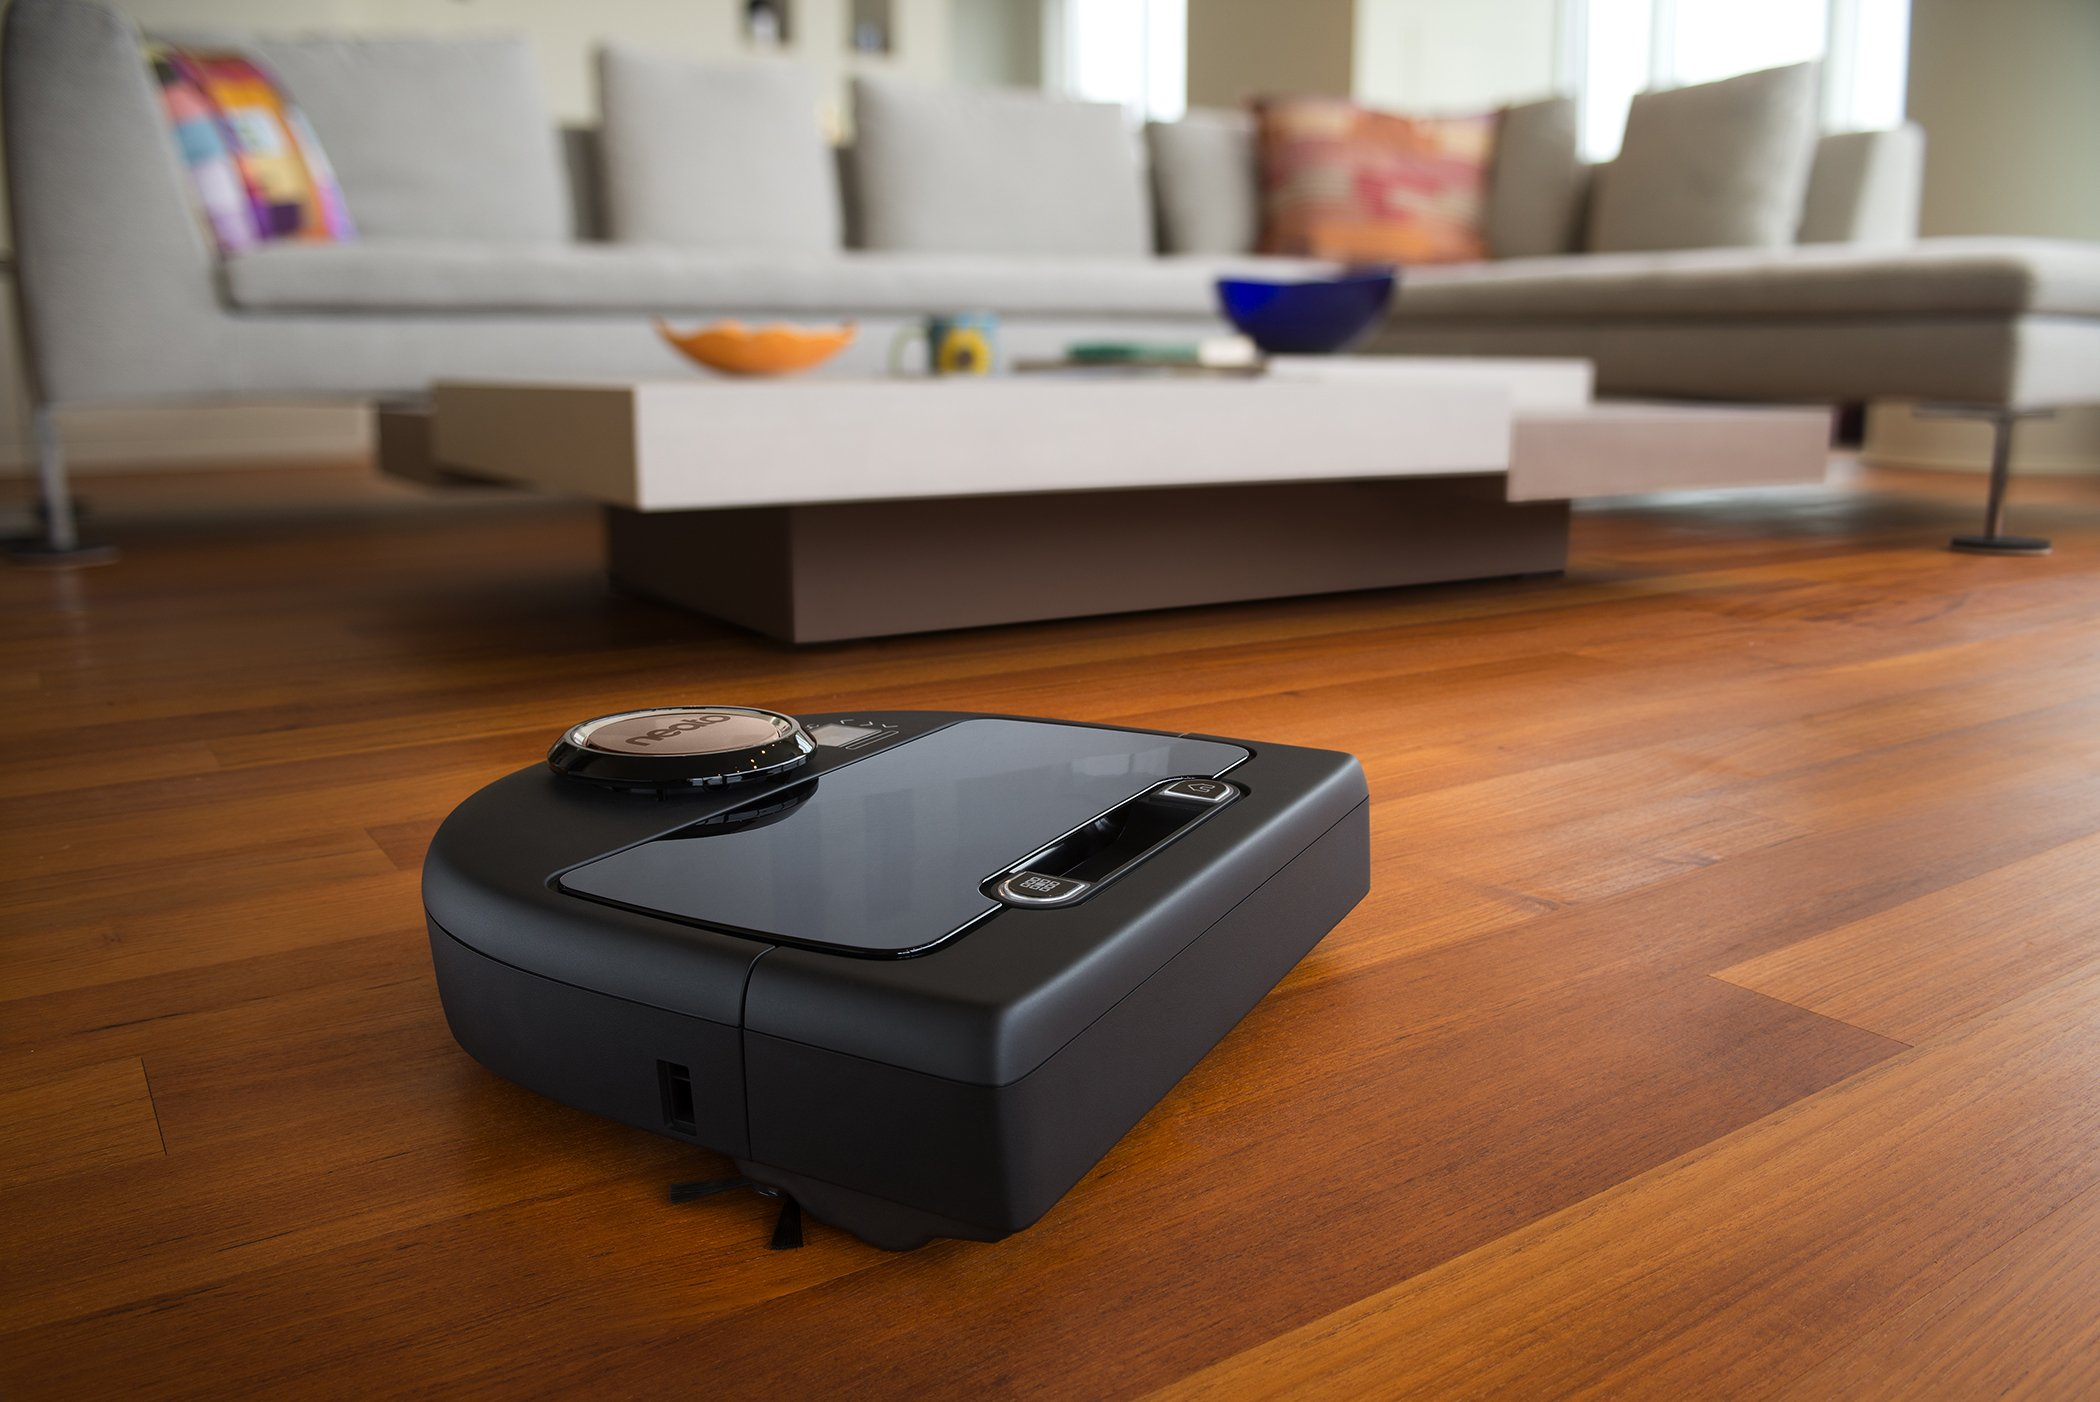 Neato Botvac Connected Wi-Fi Enabled Robot Vacuum, Works with Amazon Alexa by Neato Robotics (Image #6)